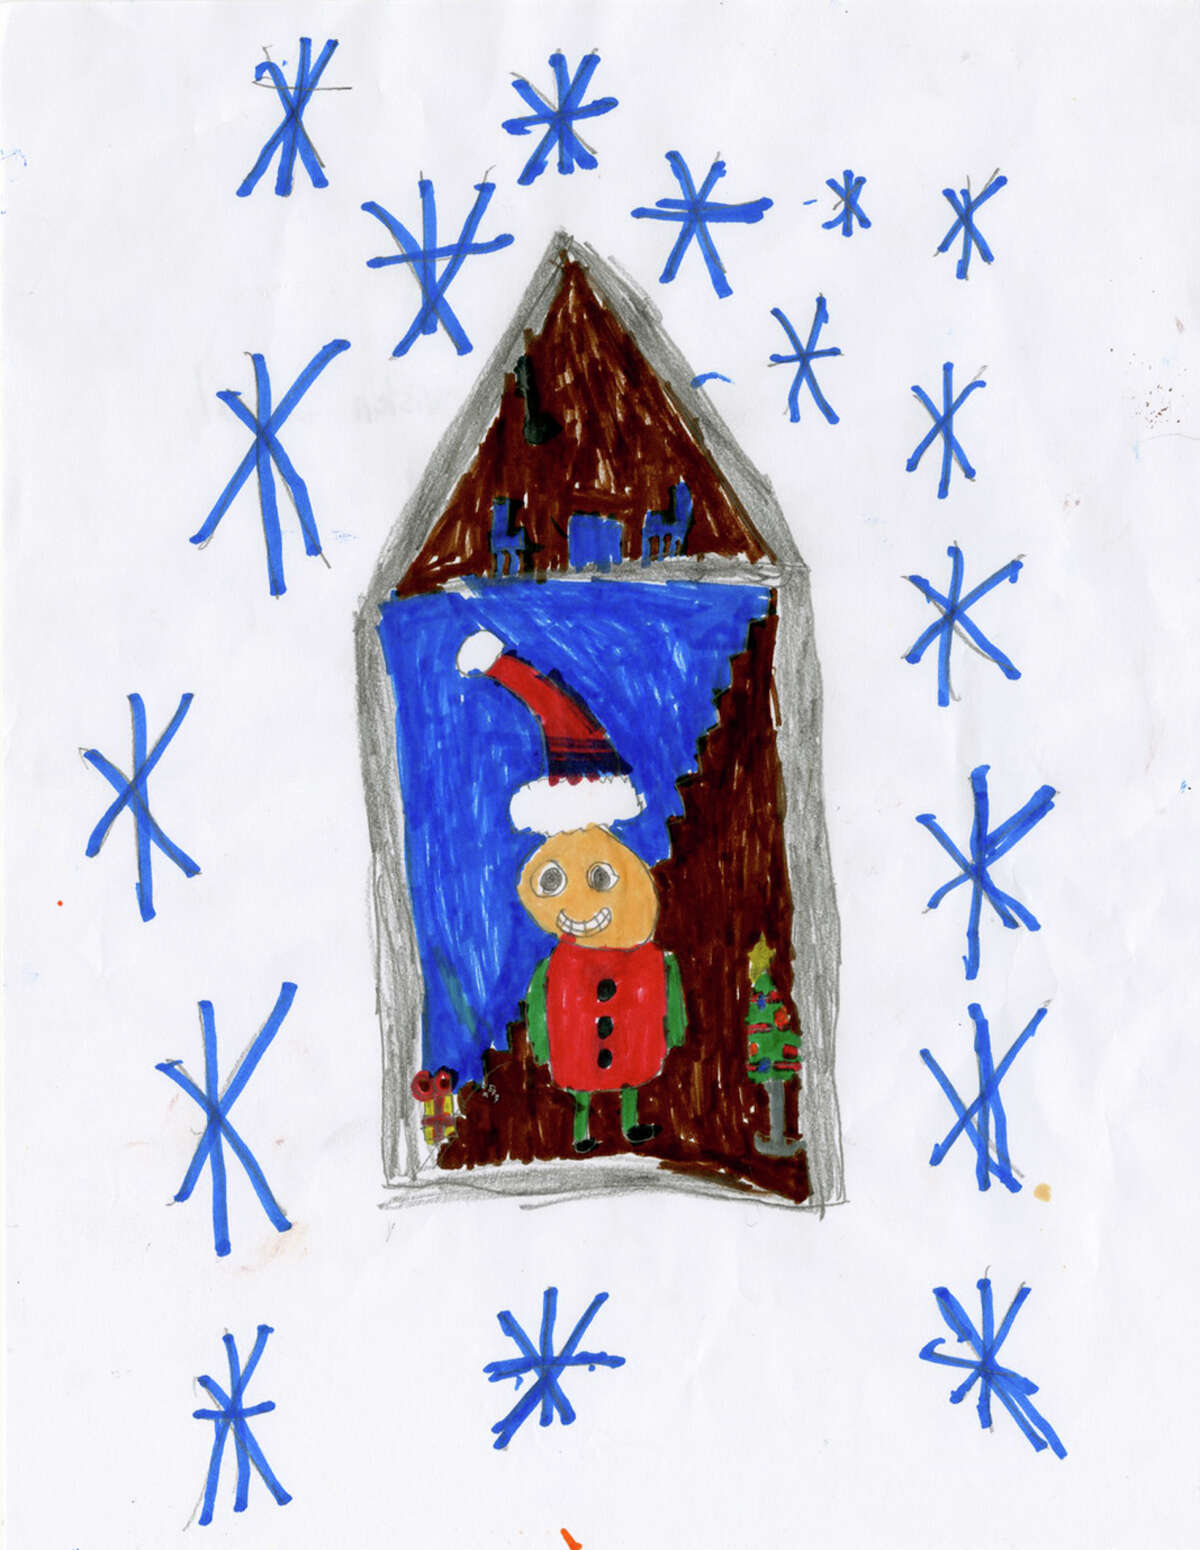 An entry from a schoolchild in the Capital Region for the 2020 Holiday Card Contest.